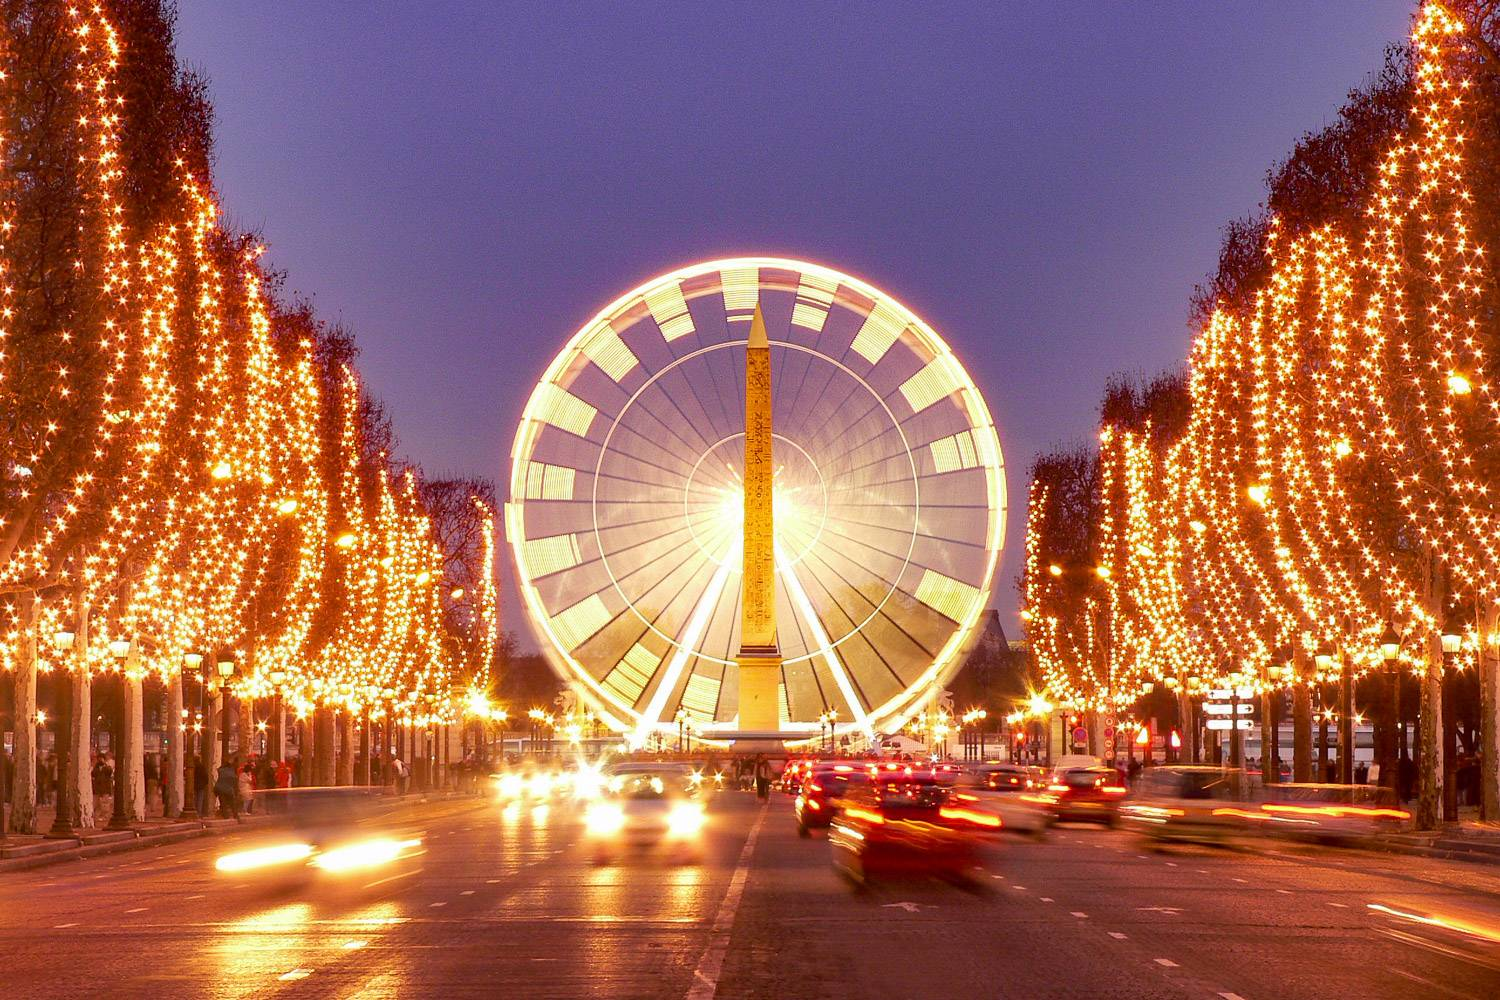 Alt Text: Image of the Avenue des Champs-Elysées with trees draped with Christmas lights lining both sides of the road and a large Ferris Wheel in the middle.